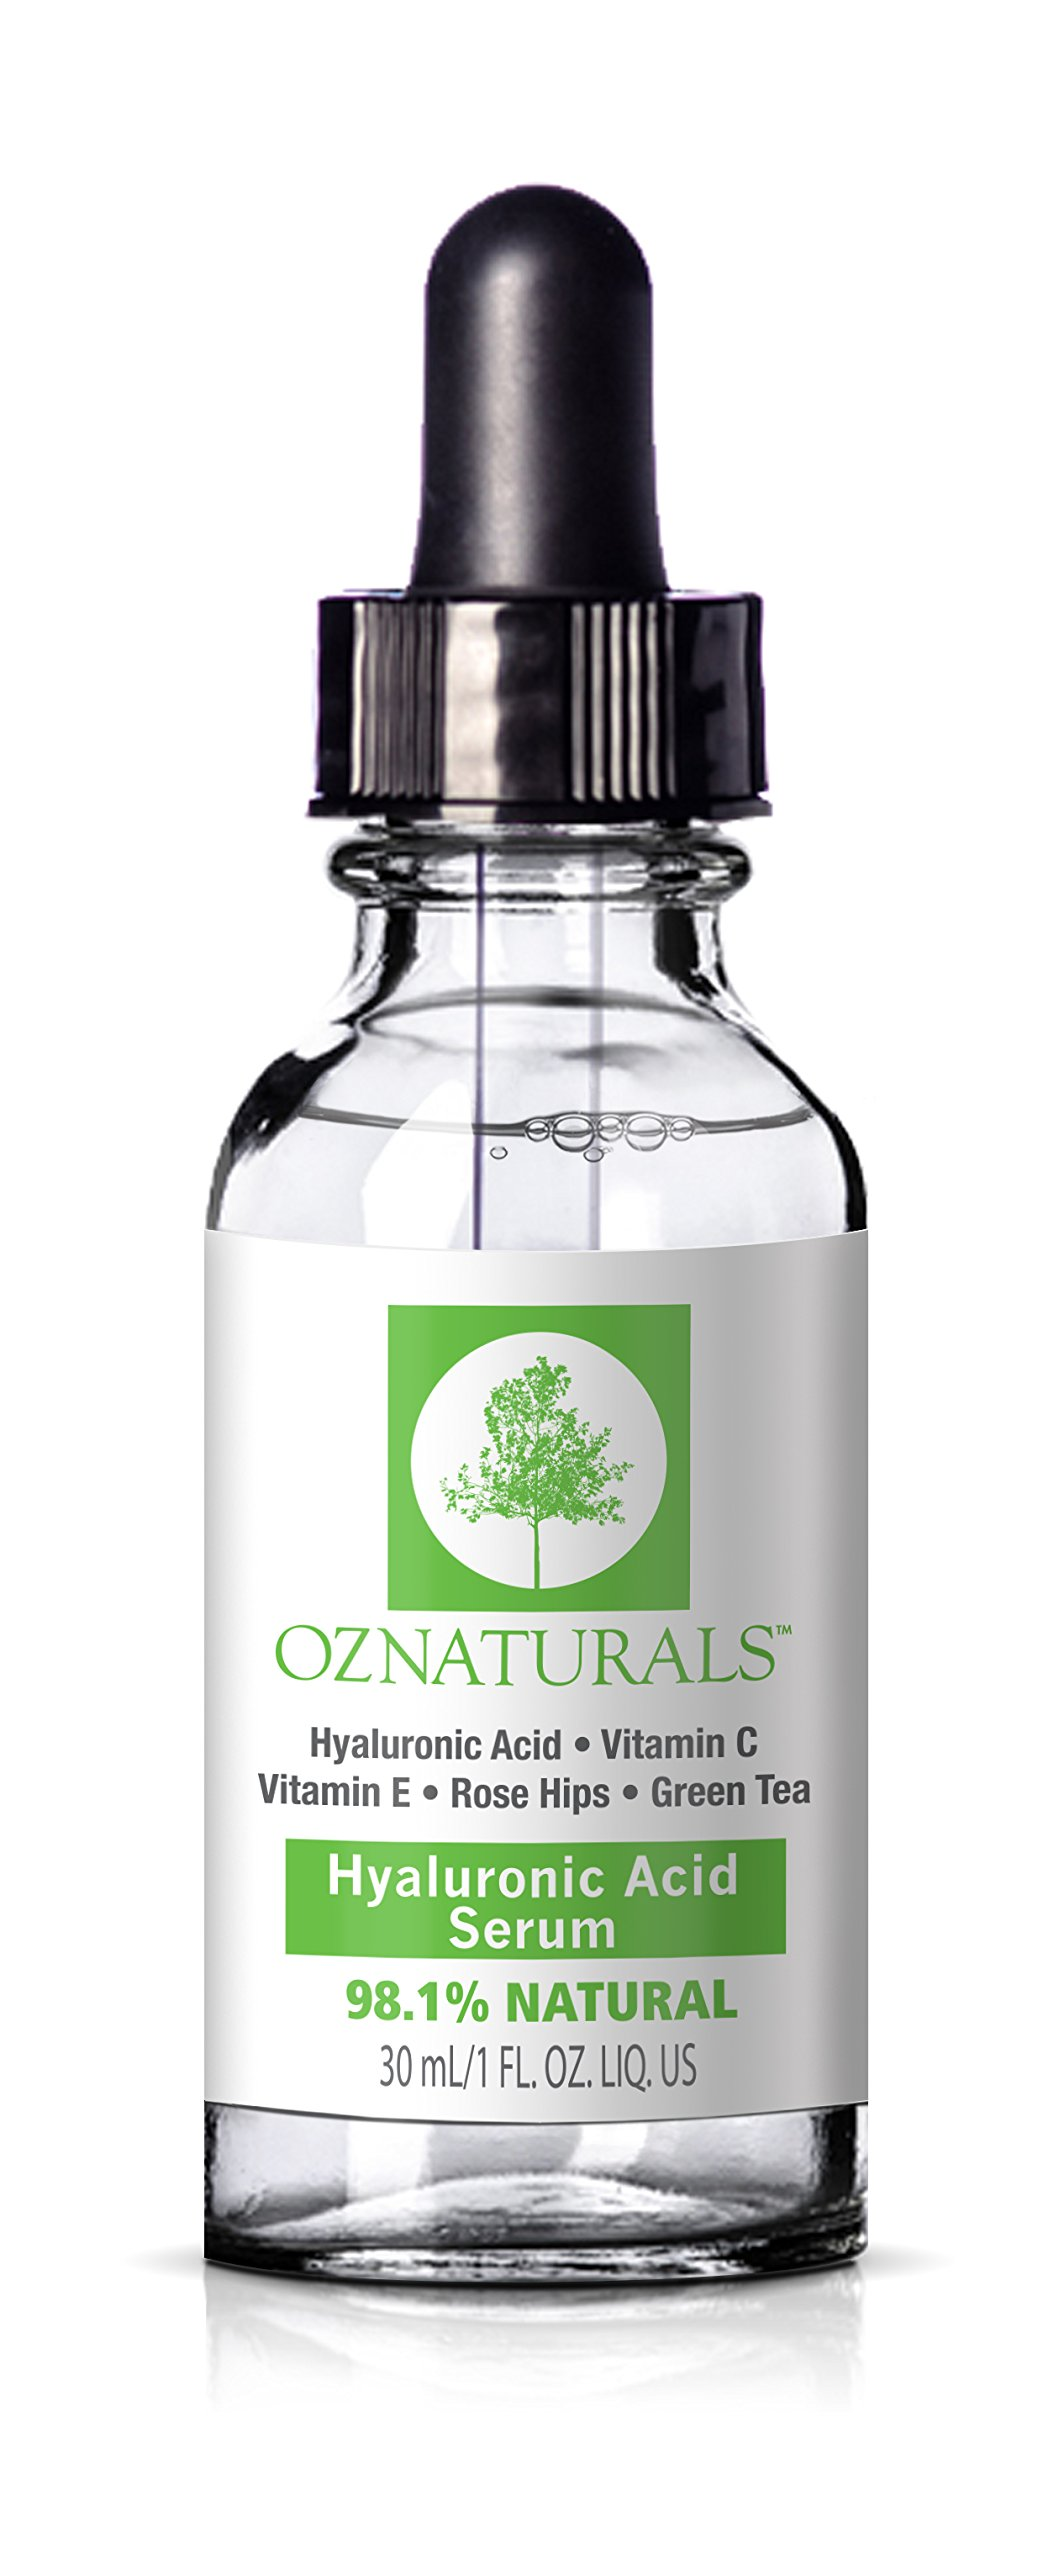 OZNaturals Hyaluronic Acid Serum For Face - Anti Aging Anti Wrinkle Serum Hyaluronic Acid With Vitamin C. Best Natural Skin Care to Plump, Hydrate + Diminish Lines + Wrinkles 1 fl. Oz